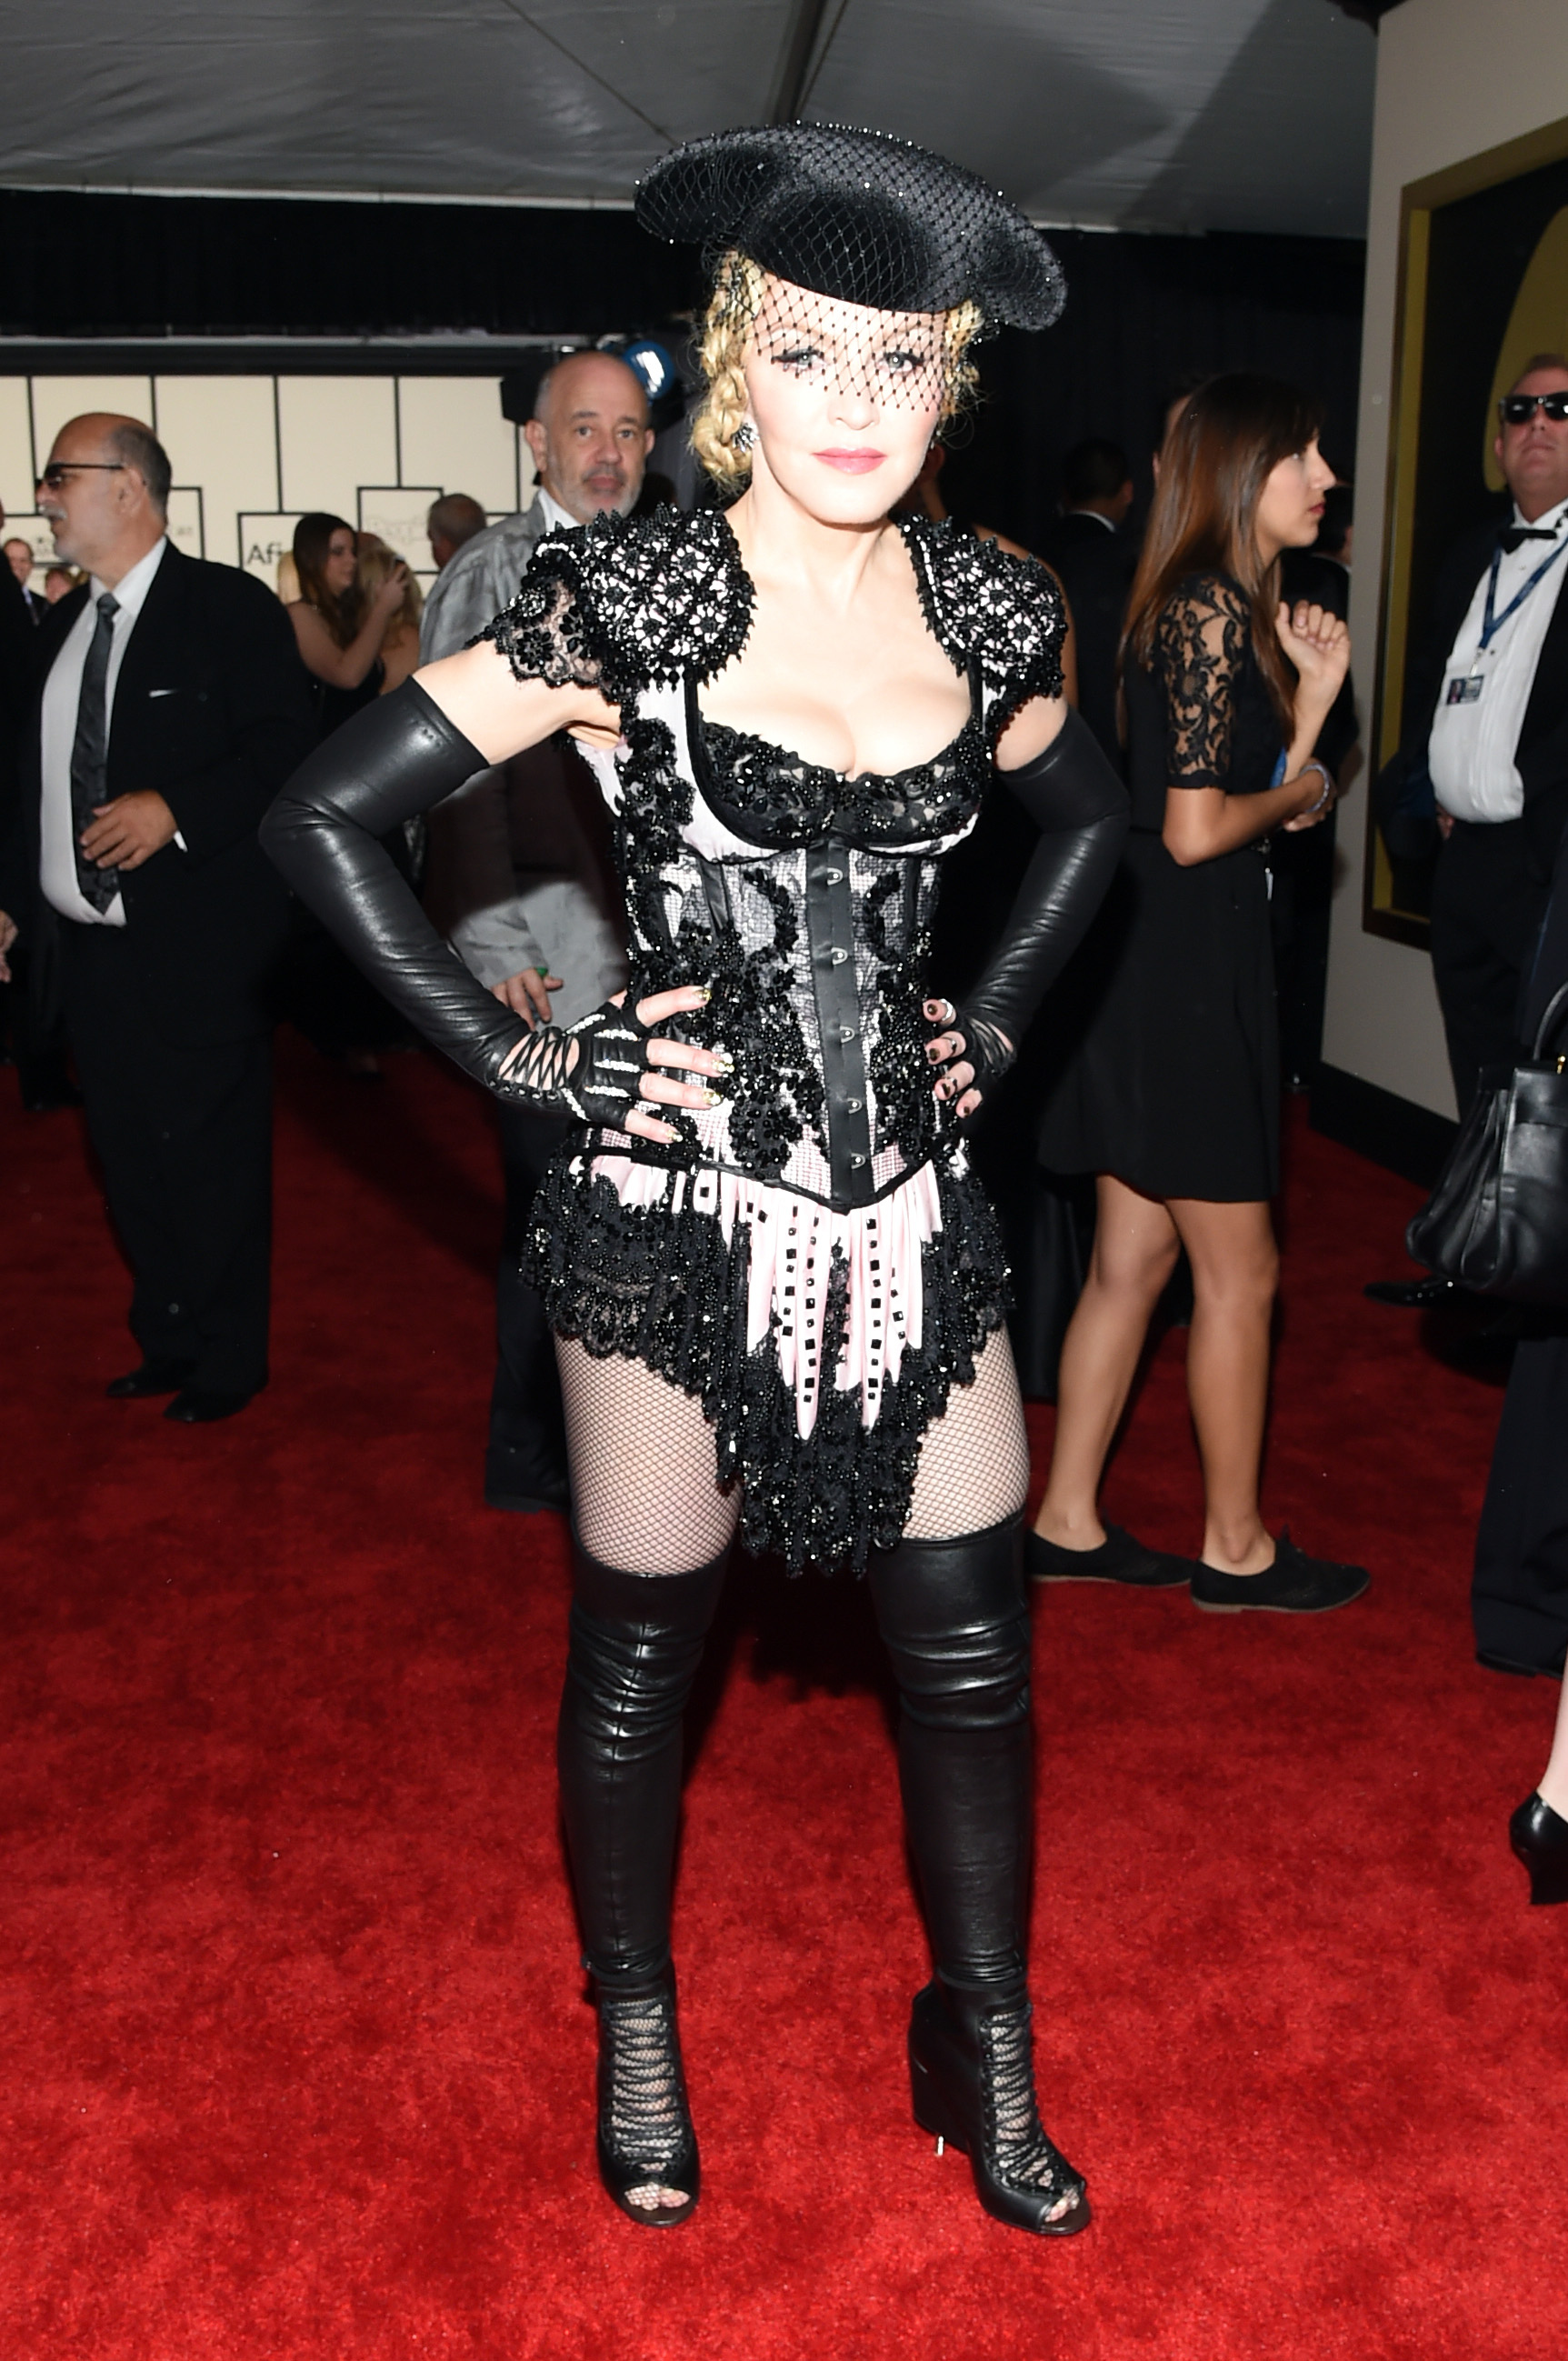 Madonna Releases 3 New Songs, Including Mike Tyson Track | Access Online